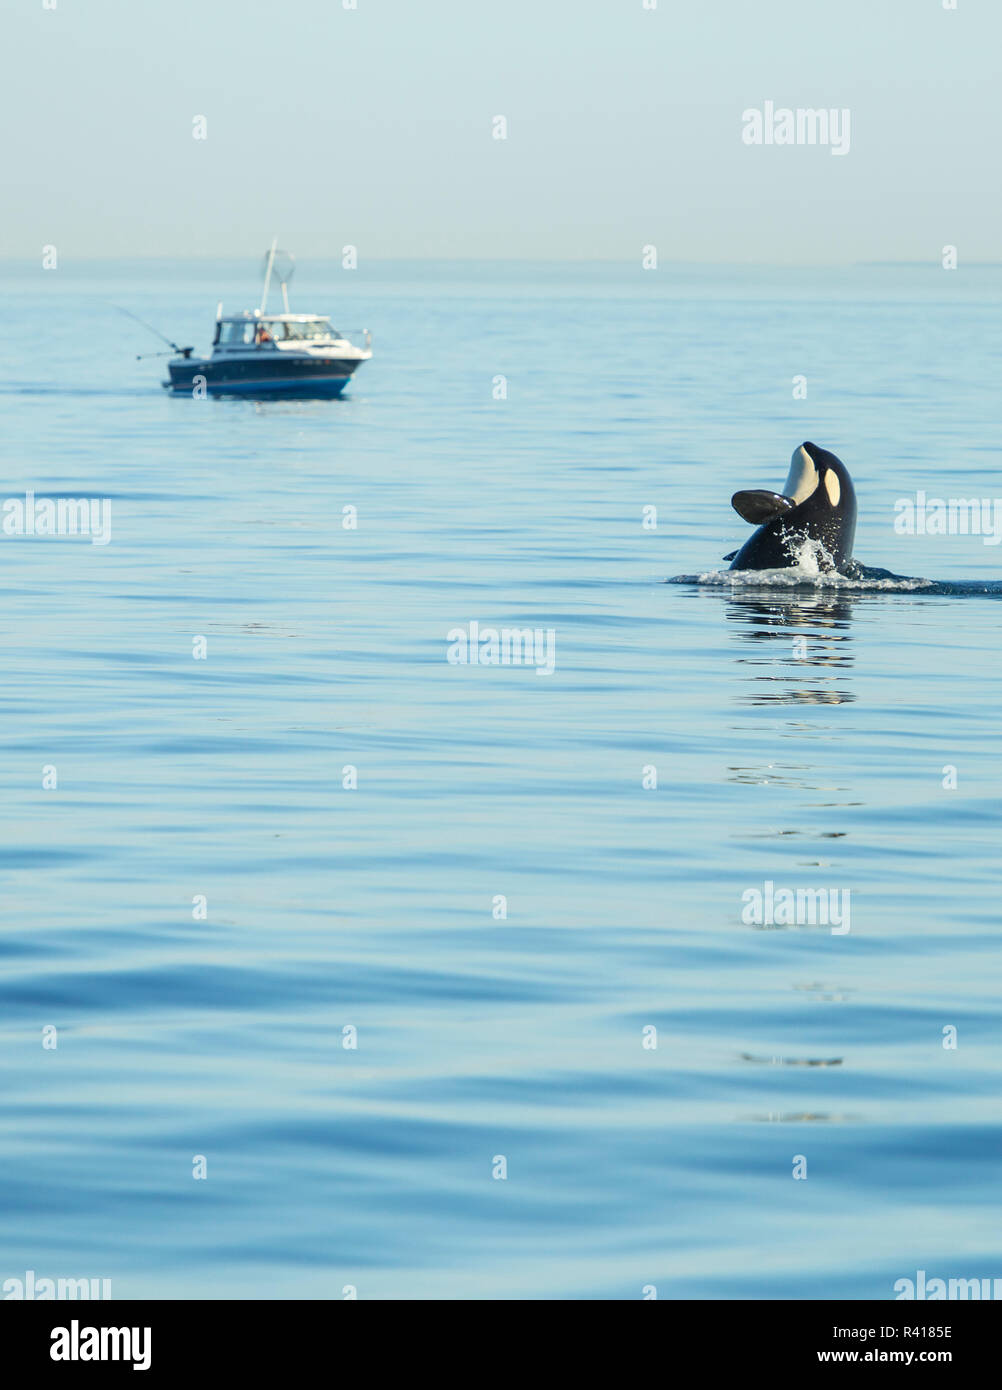 Spy hopping Juvenile Orca from Pod of resident Orca Whales (Orcinus orca) in Haro Strait near San Juan Island, Washington State, USA - Stock Image